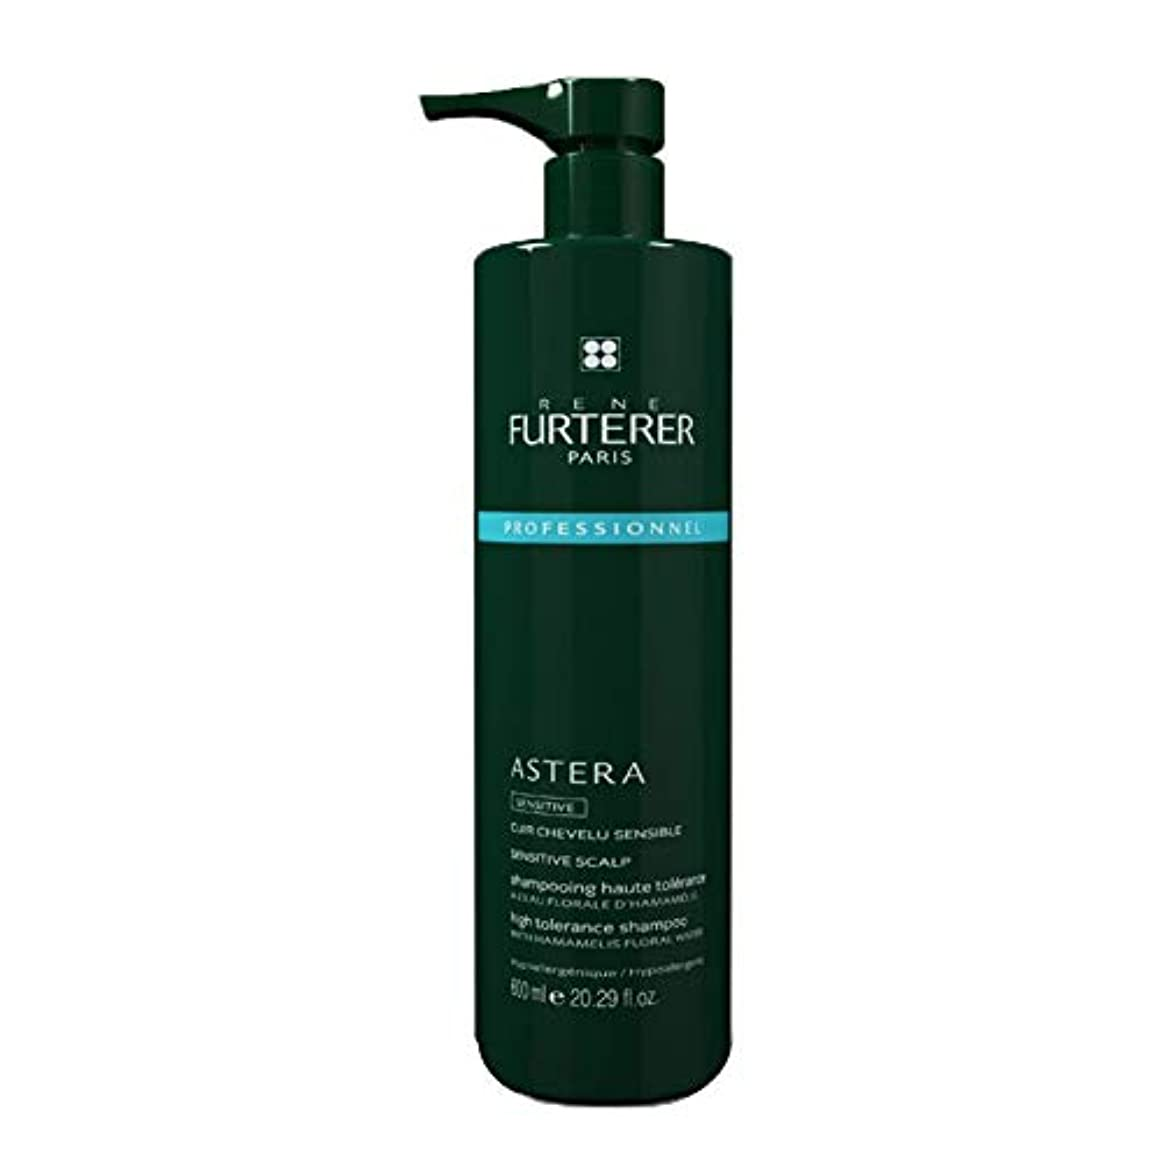 扱いやすいタヒチ急ぐルネ フルトレール Astera Sensitive High Tolerance Scalp Ritual Dermo-Protective Shampoo (Sensitive Scalp) 600ml/20.2oz...